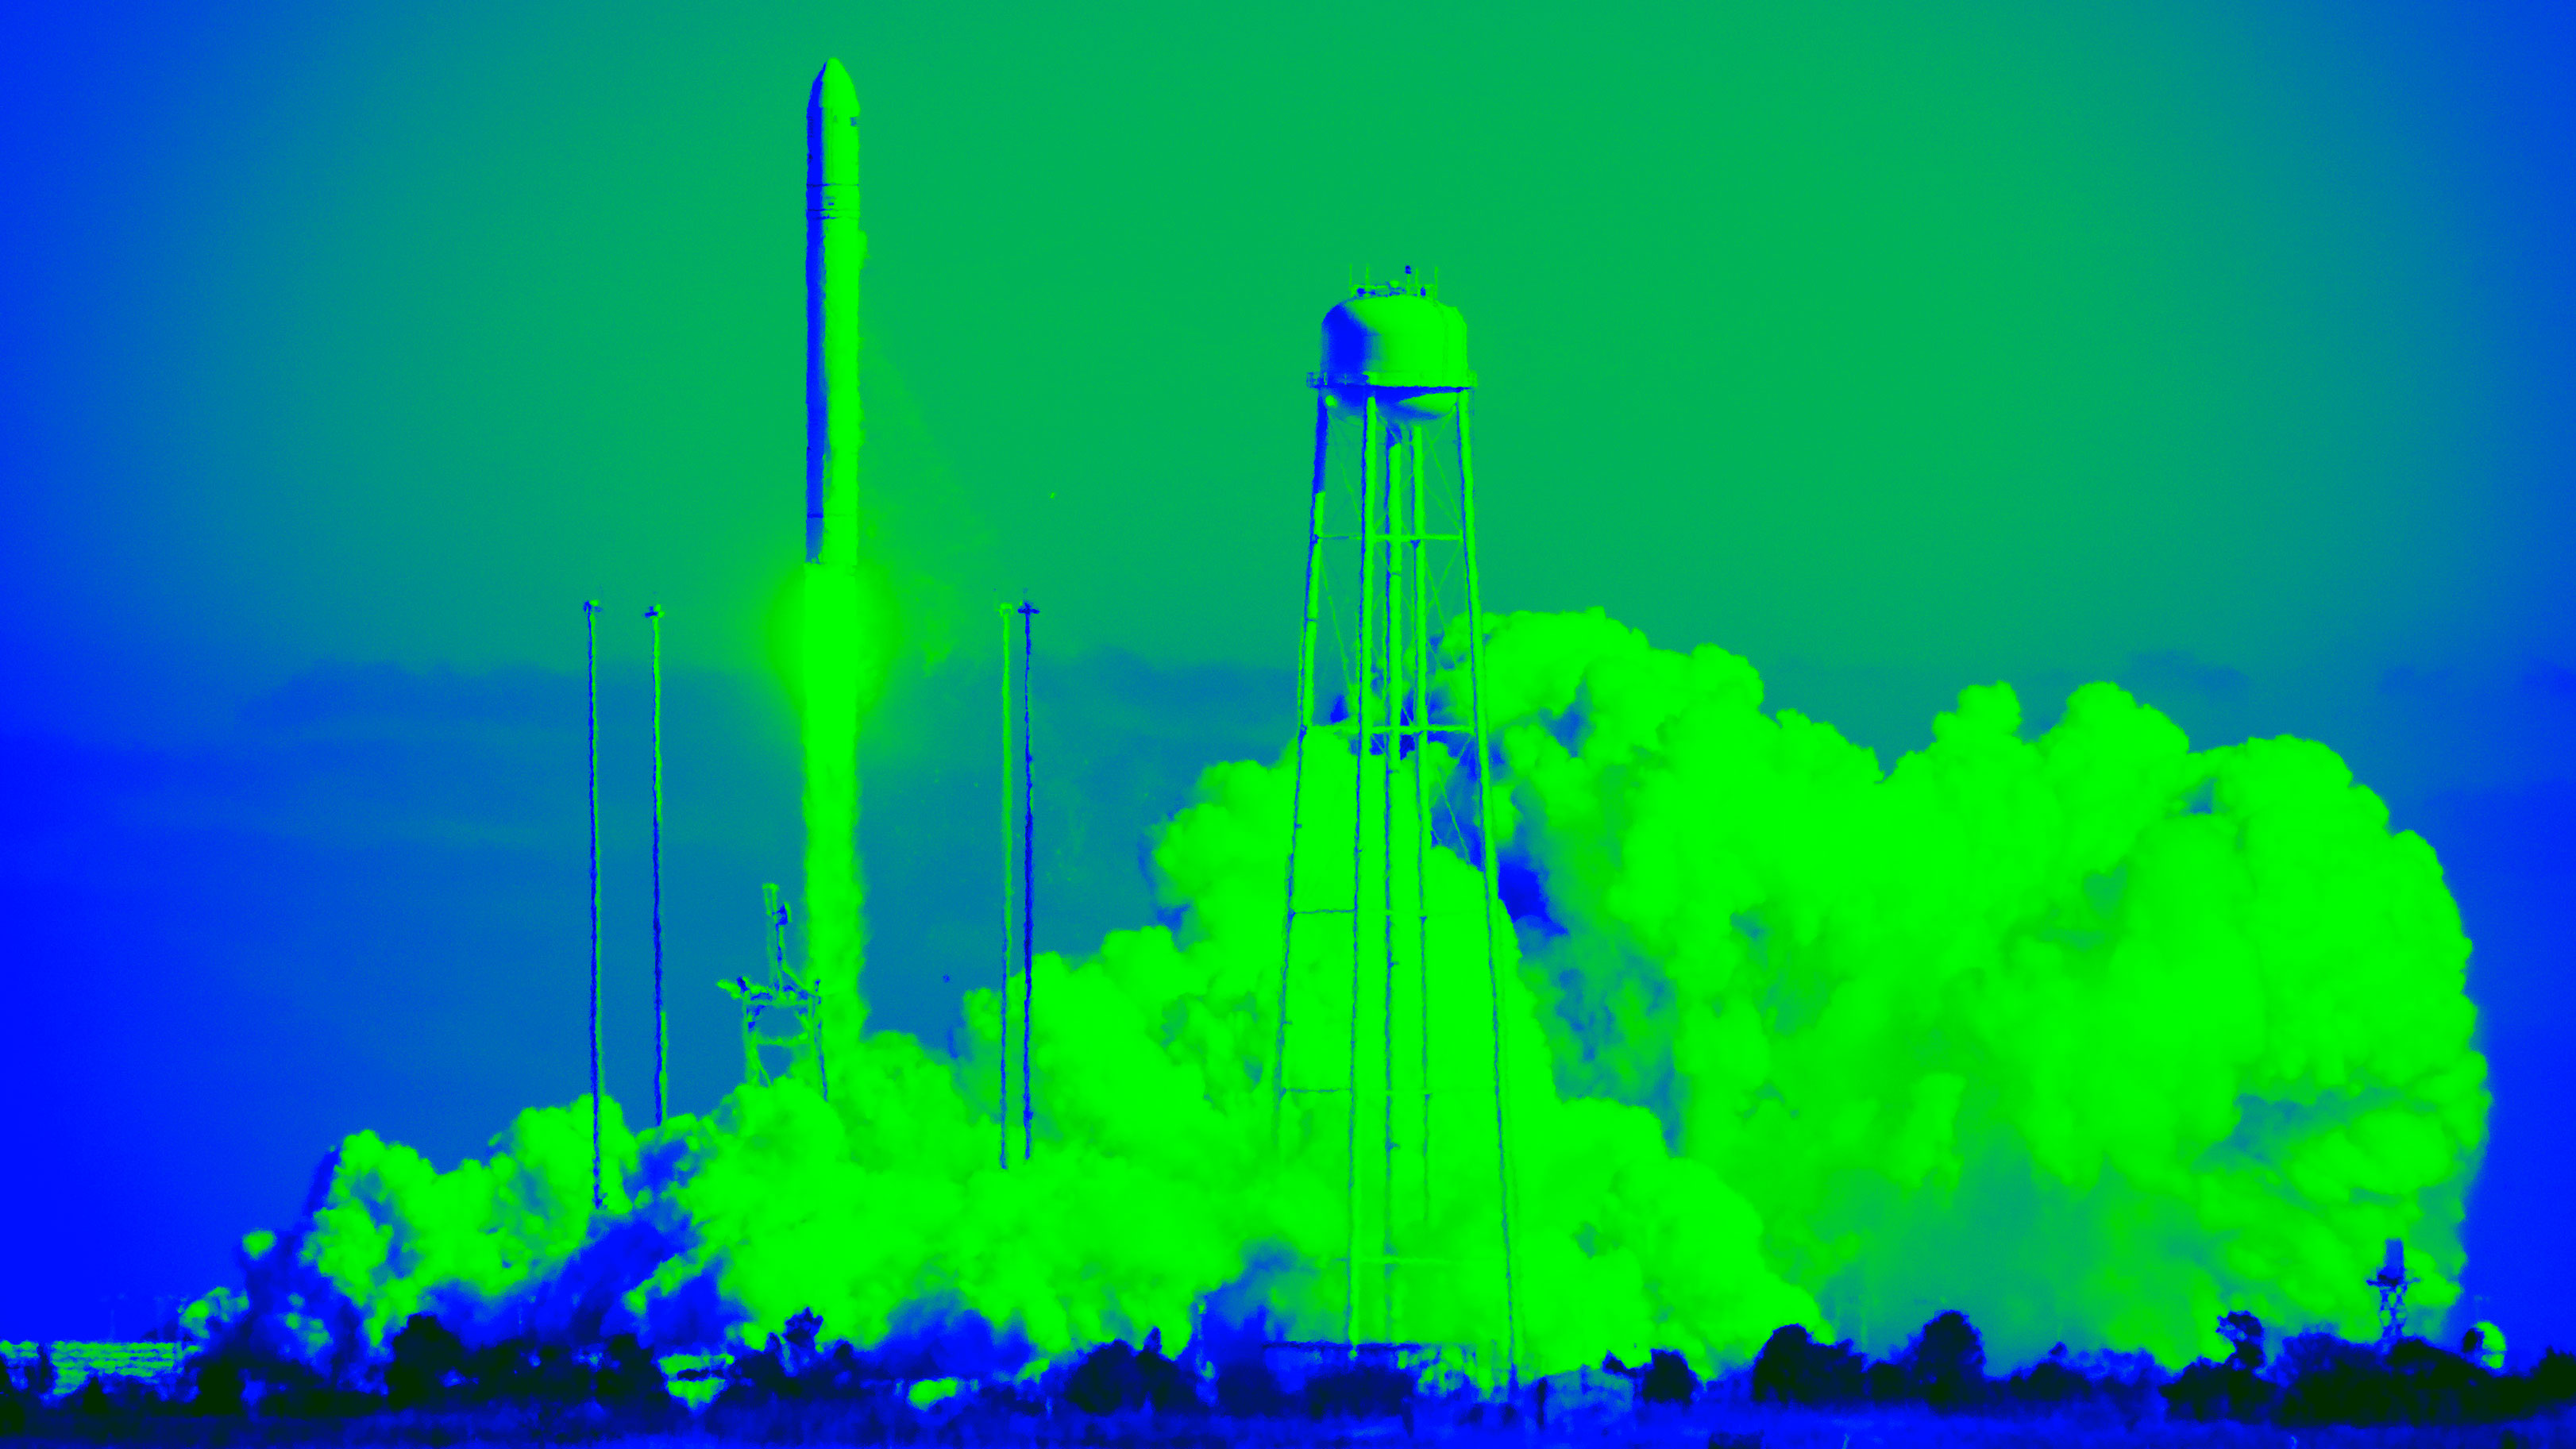 An image of a rocket taking off